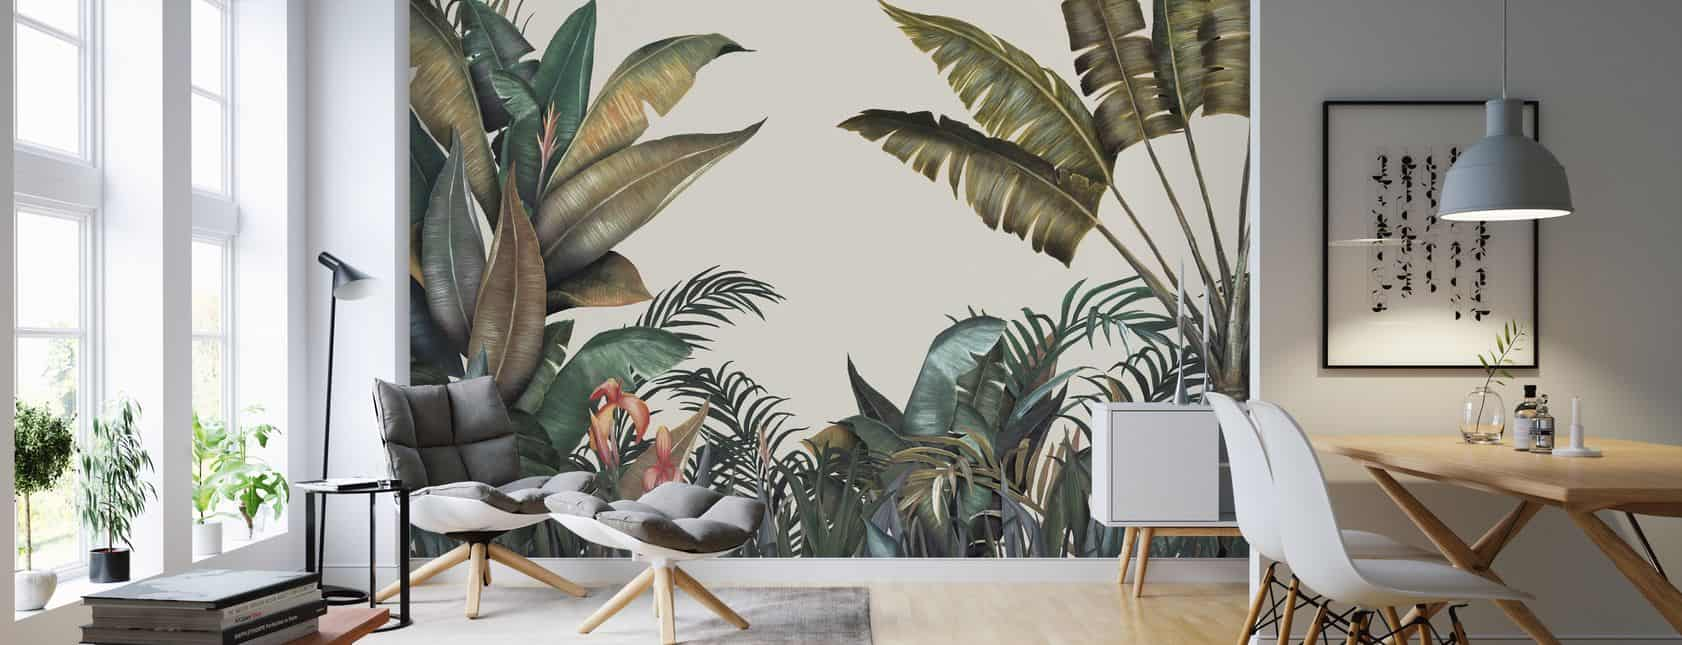 Wallpaper Trends 2021 The Most Popular Ideas Prints And Patterns